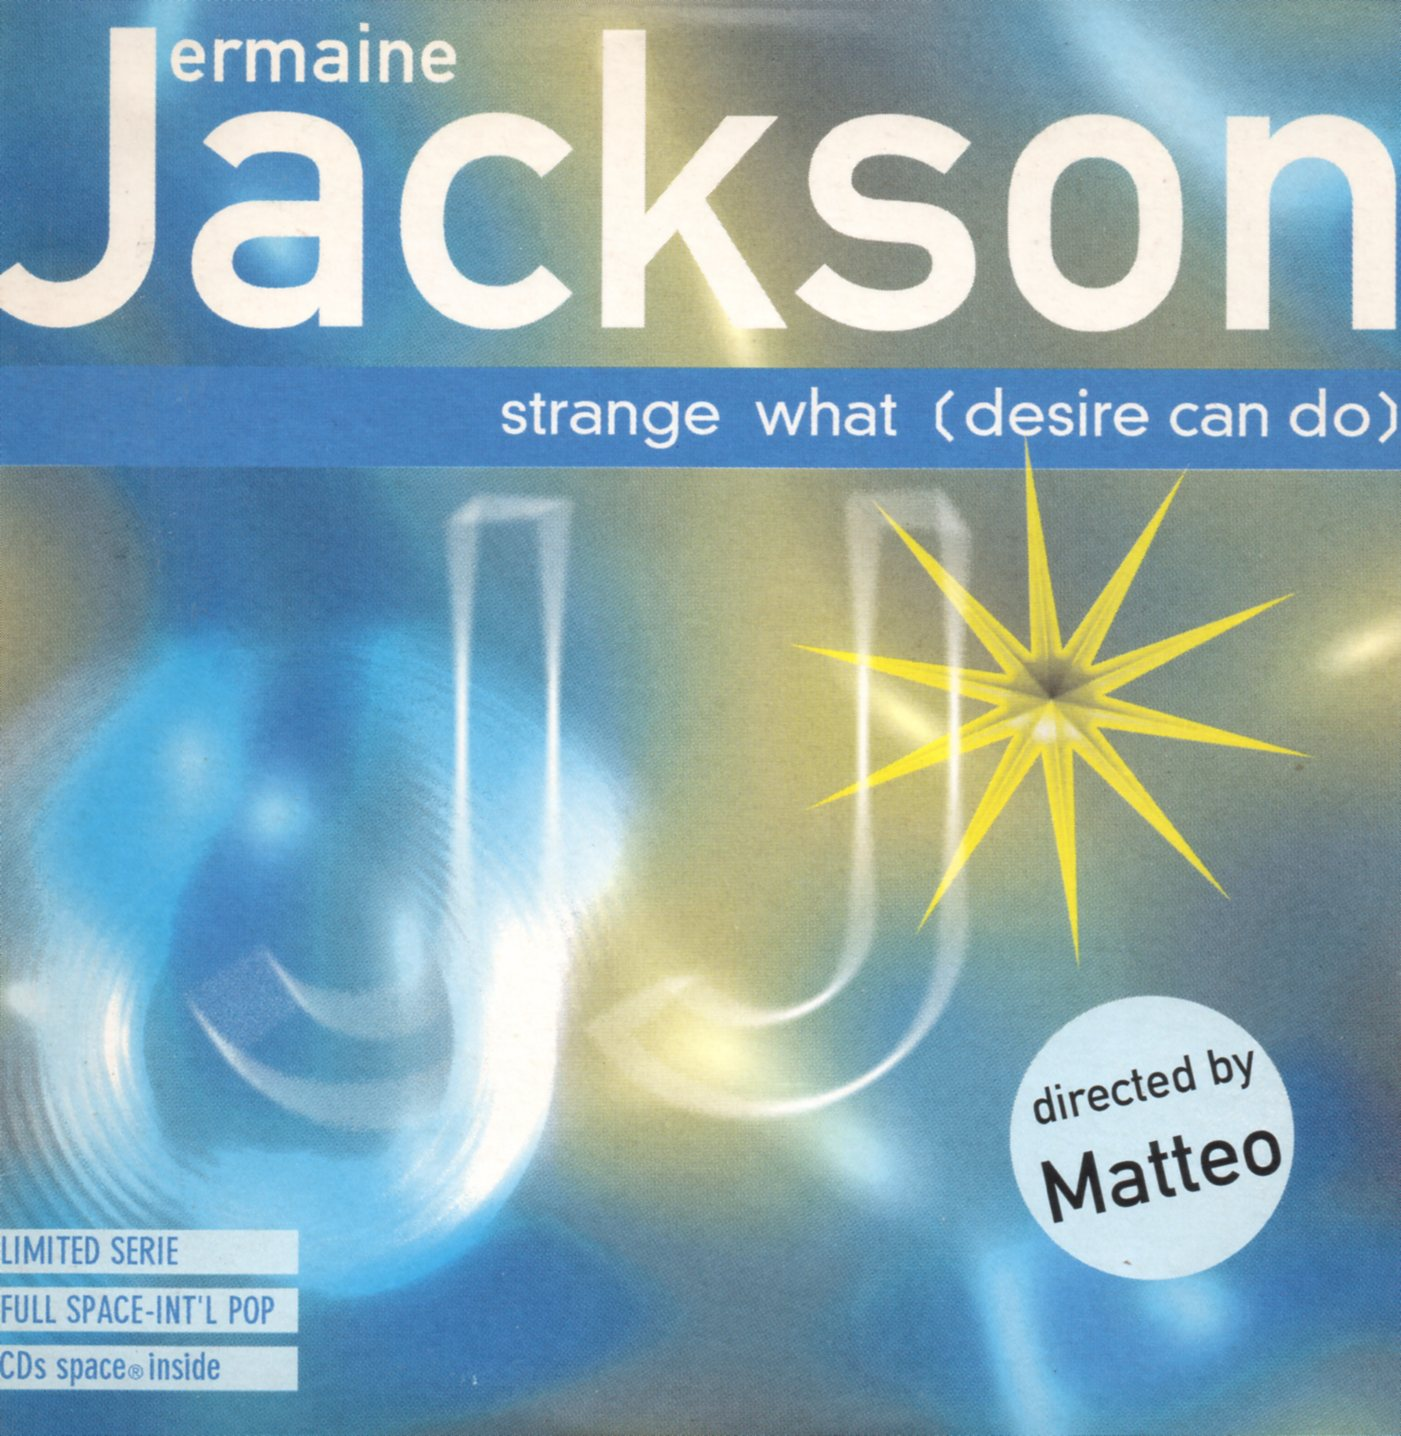 JERMAINE JACKSON - Strange What (Desire Can Do) 2-track CARD SLEEVE Limited Serie - CD single